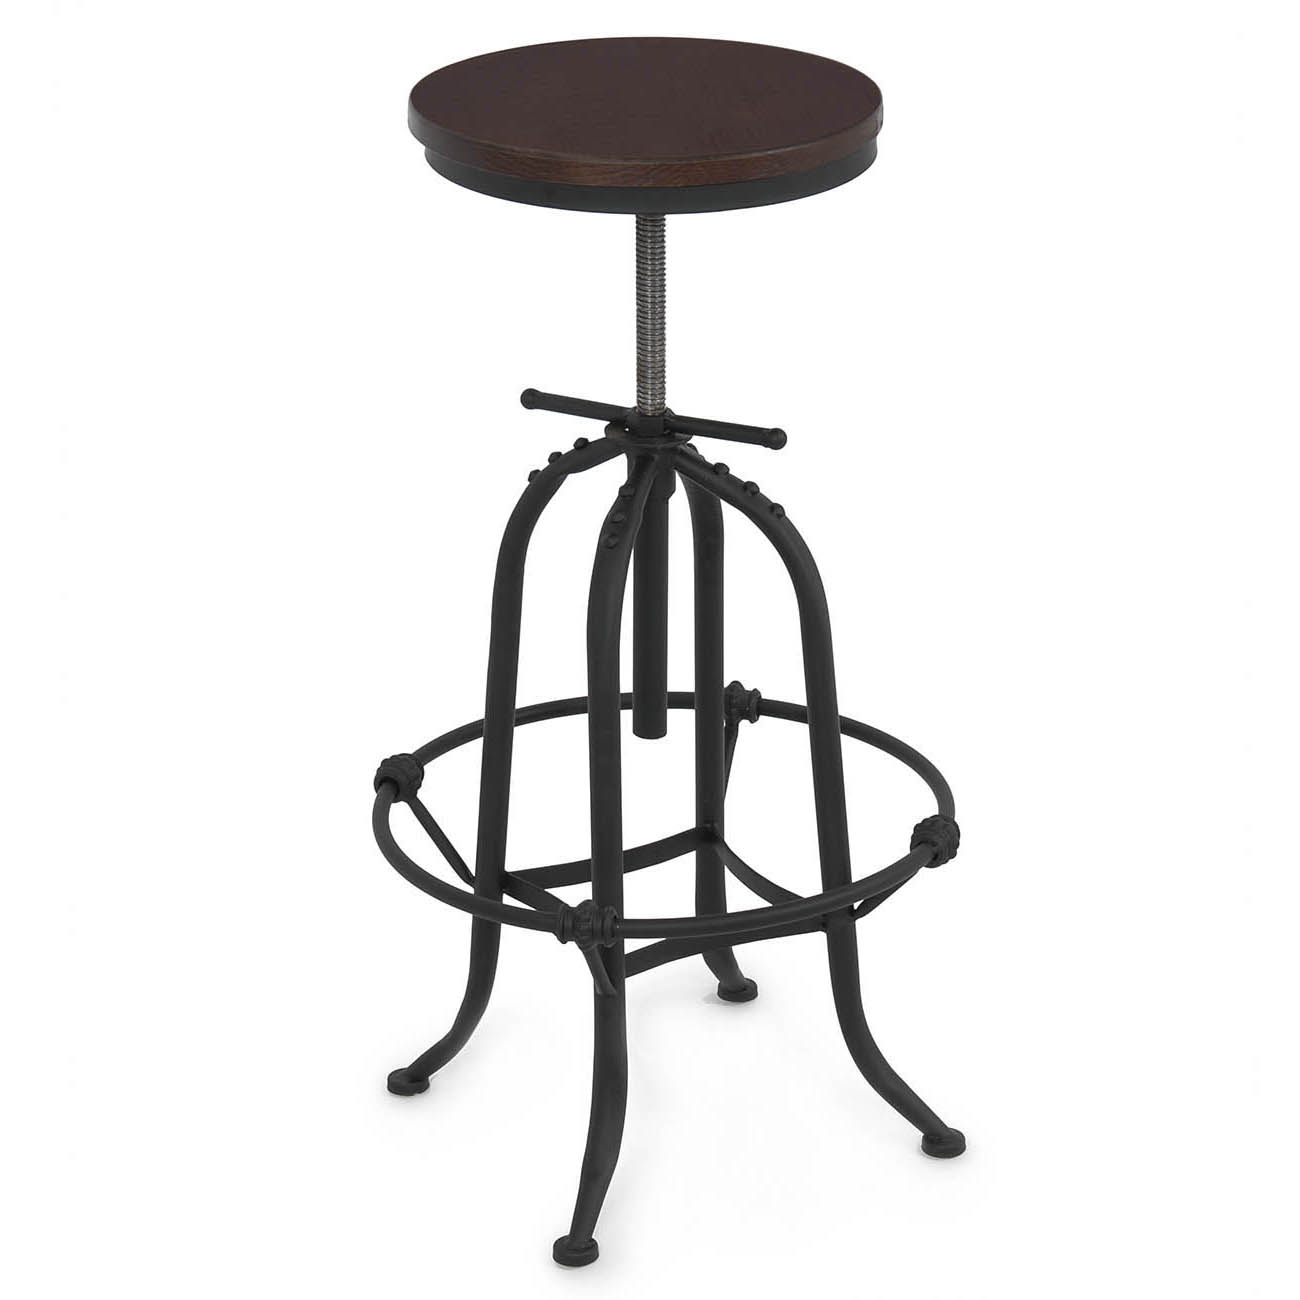 Rustic Bar Stool Home Adjustable Seat Height Countertop